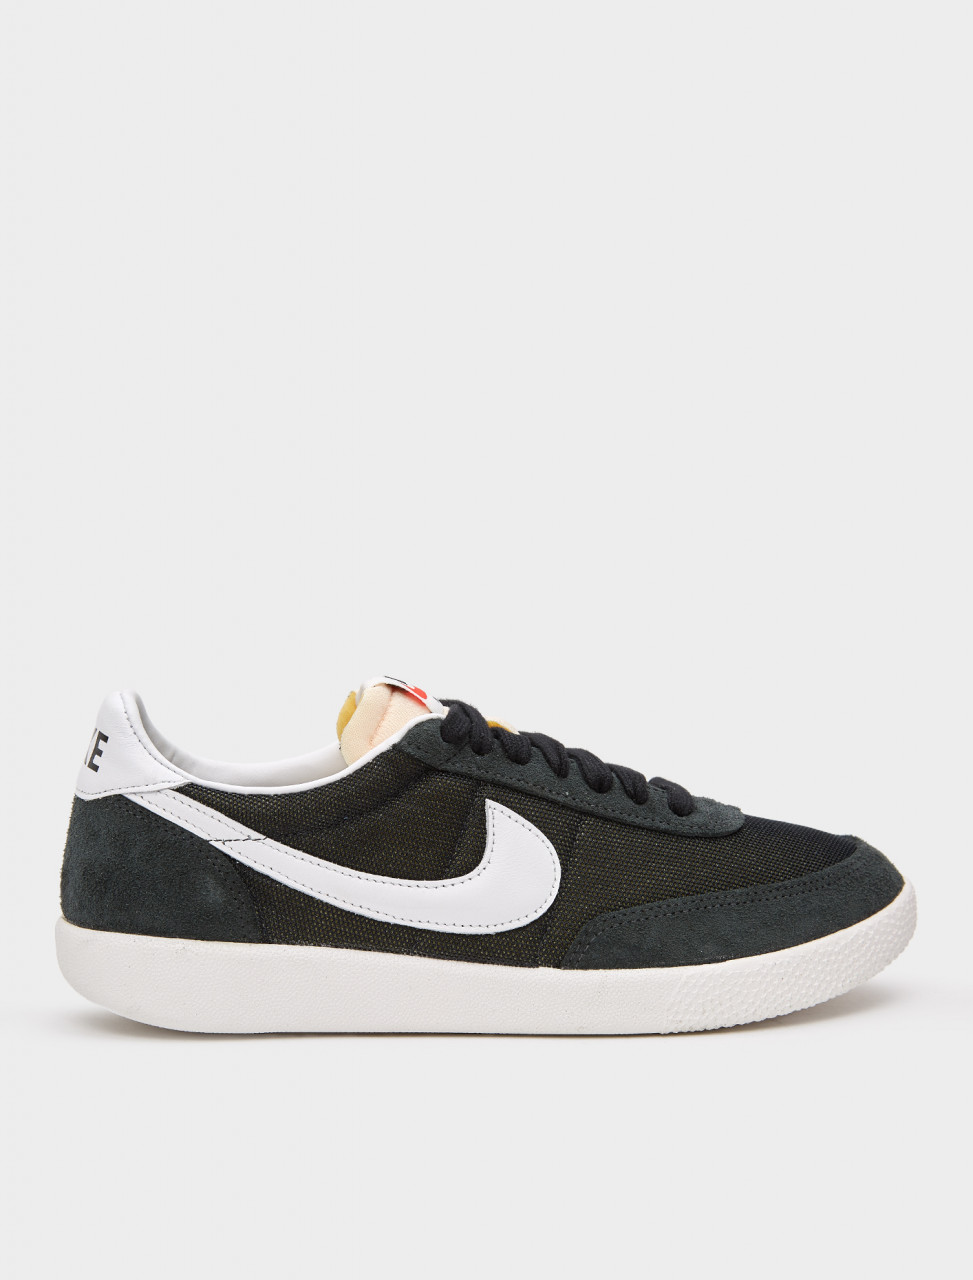 149-DC1982-001 NIKE KILLSHOT SP BLACK WHITE OFF